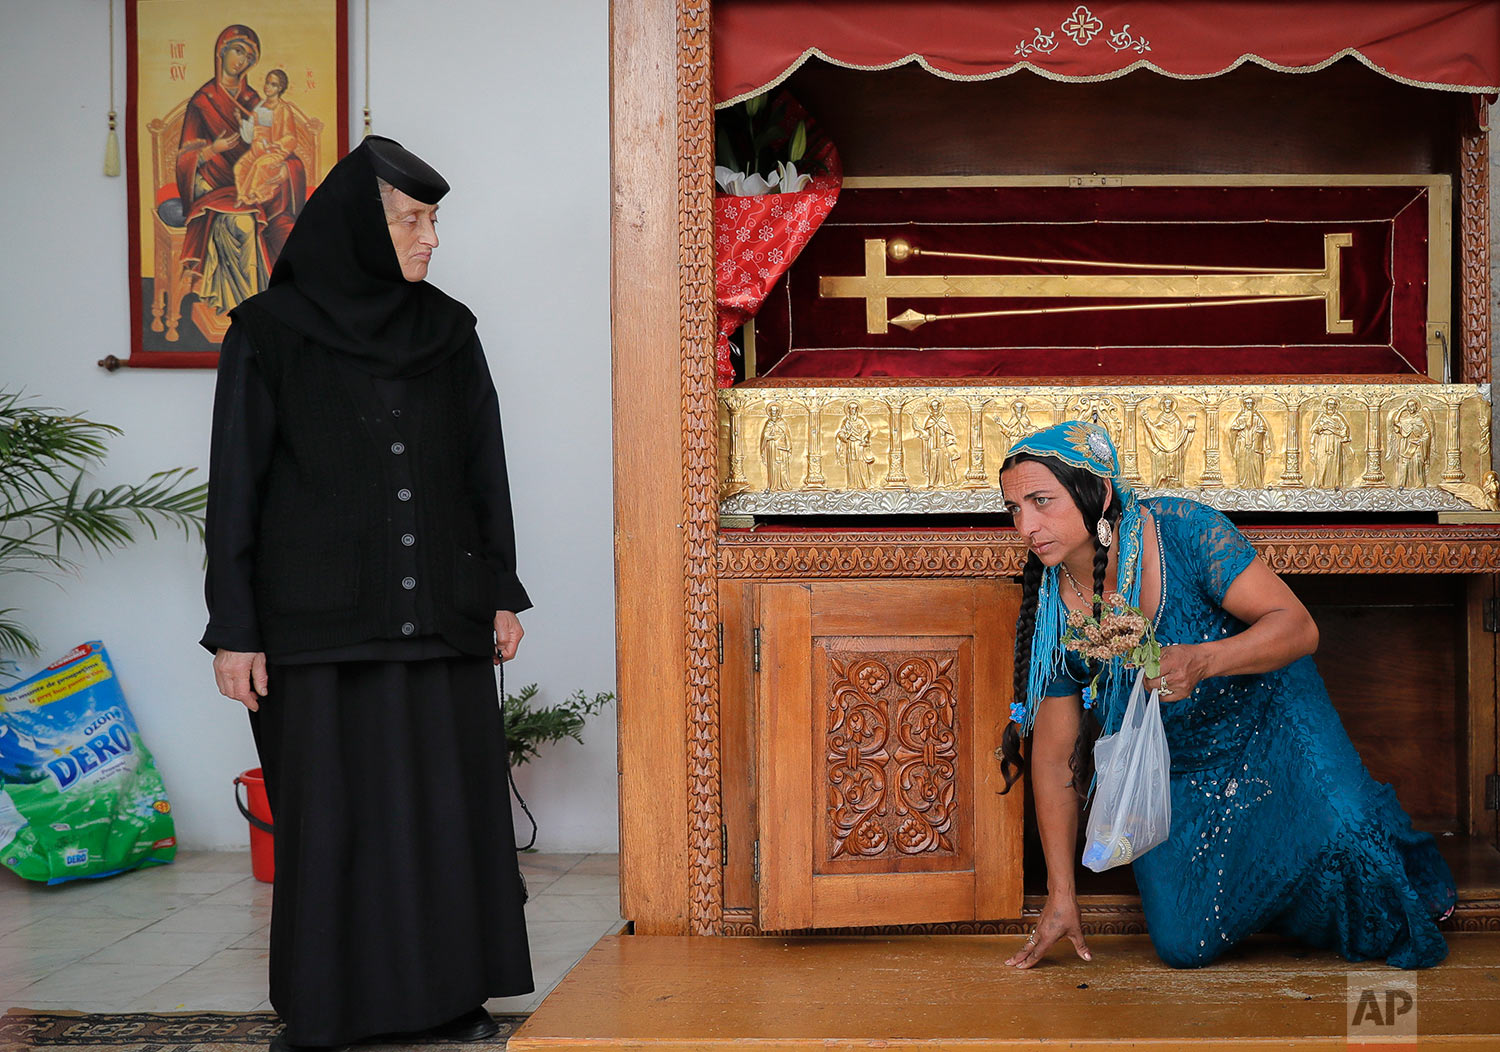 In this Friday, Sept. 8, 2017, photograph, an orthodox nun watches a Roma woman passing under a gold plated coffin containing holy remains at the Bistrita monastery in Costesti, Romania. (AP Photo/Vadim Ghirda)